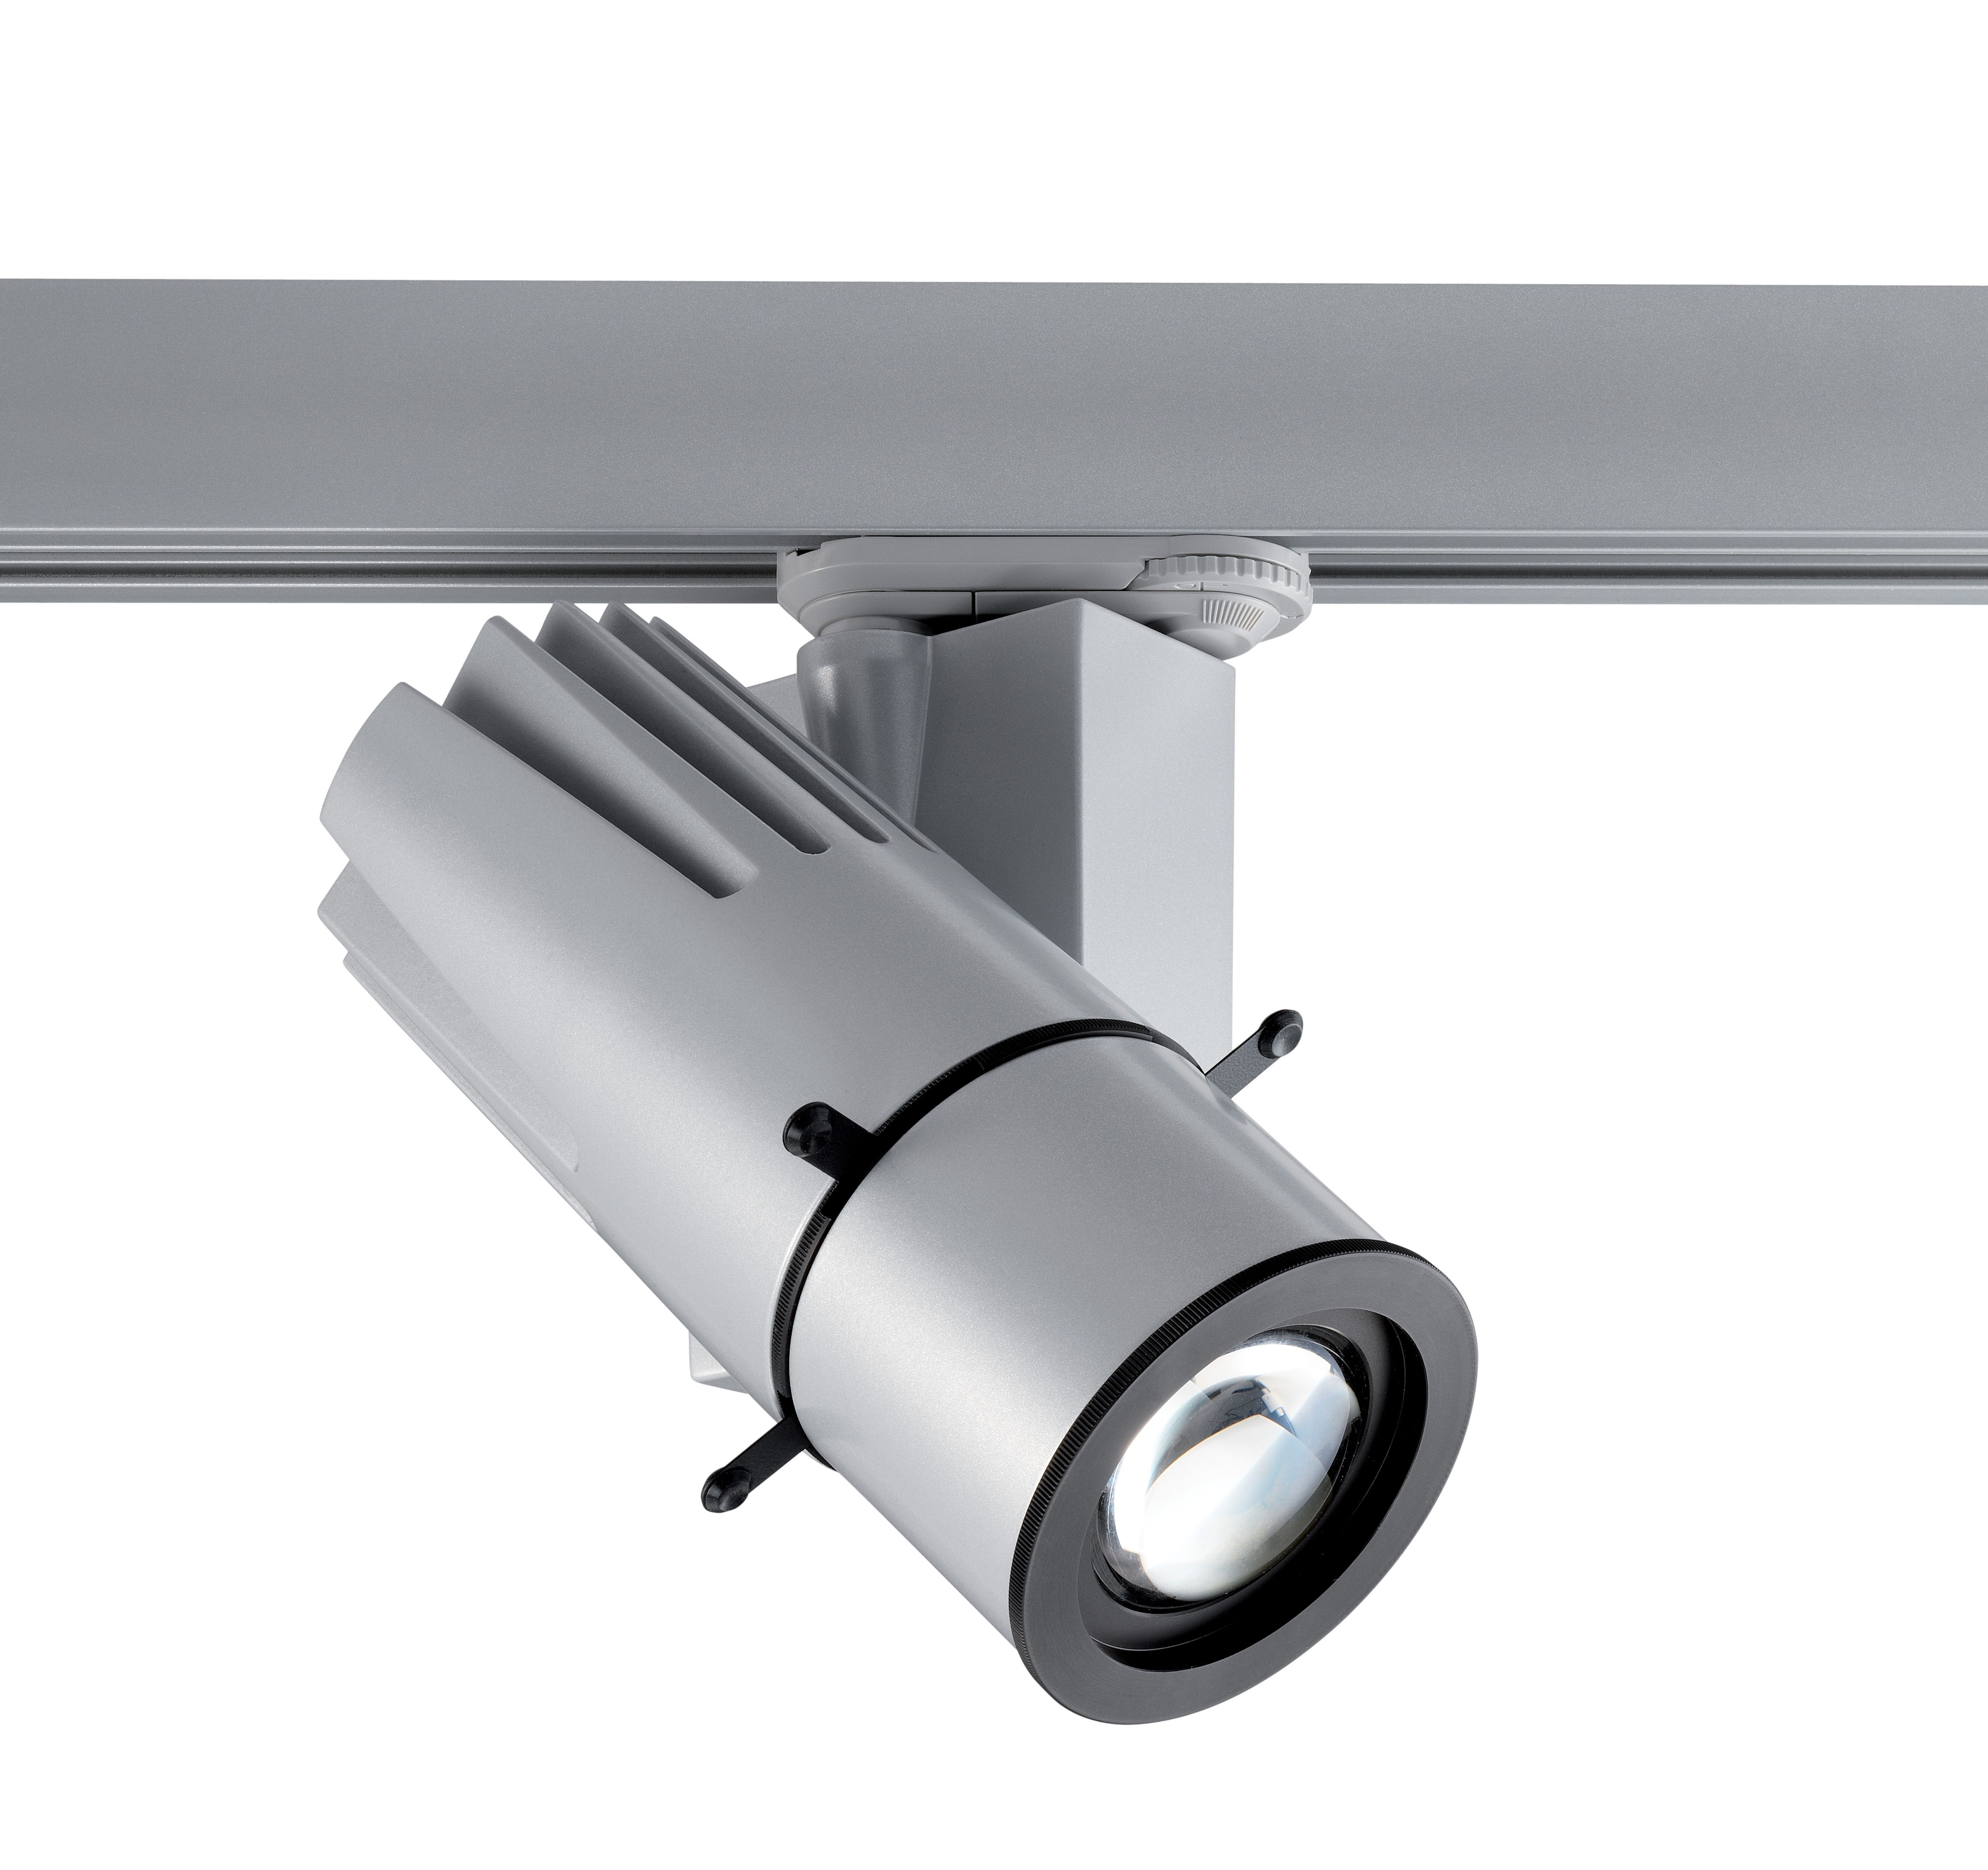 Beacon projector on board dimming framing sylvania lighting beacon projector on board dimming framing sylvania lighting solutions arubaitofo Choice Image